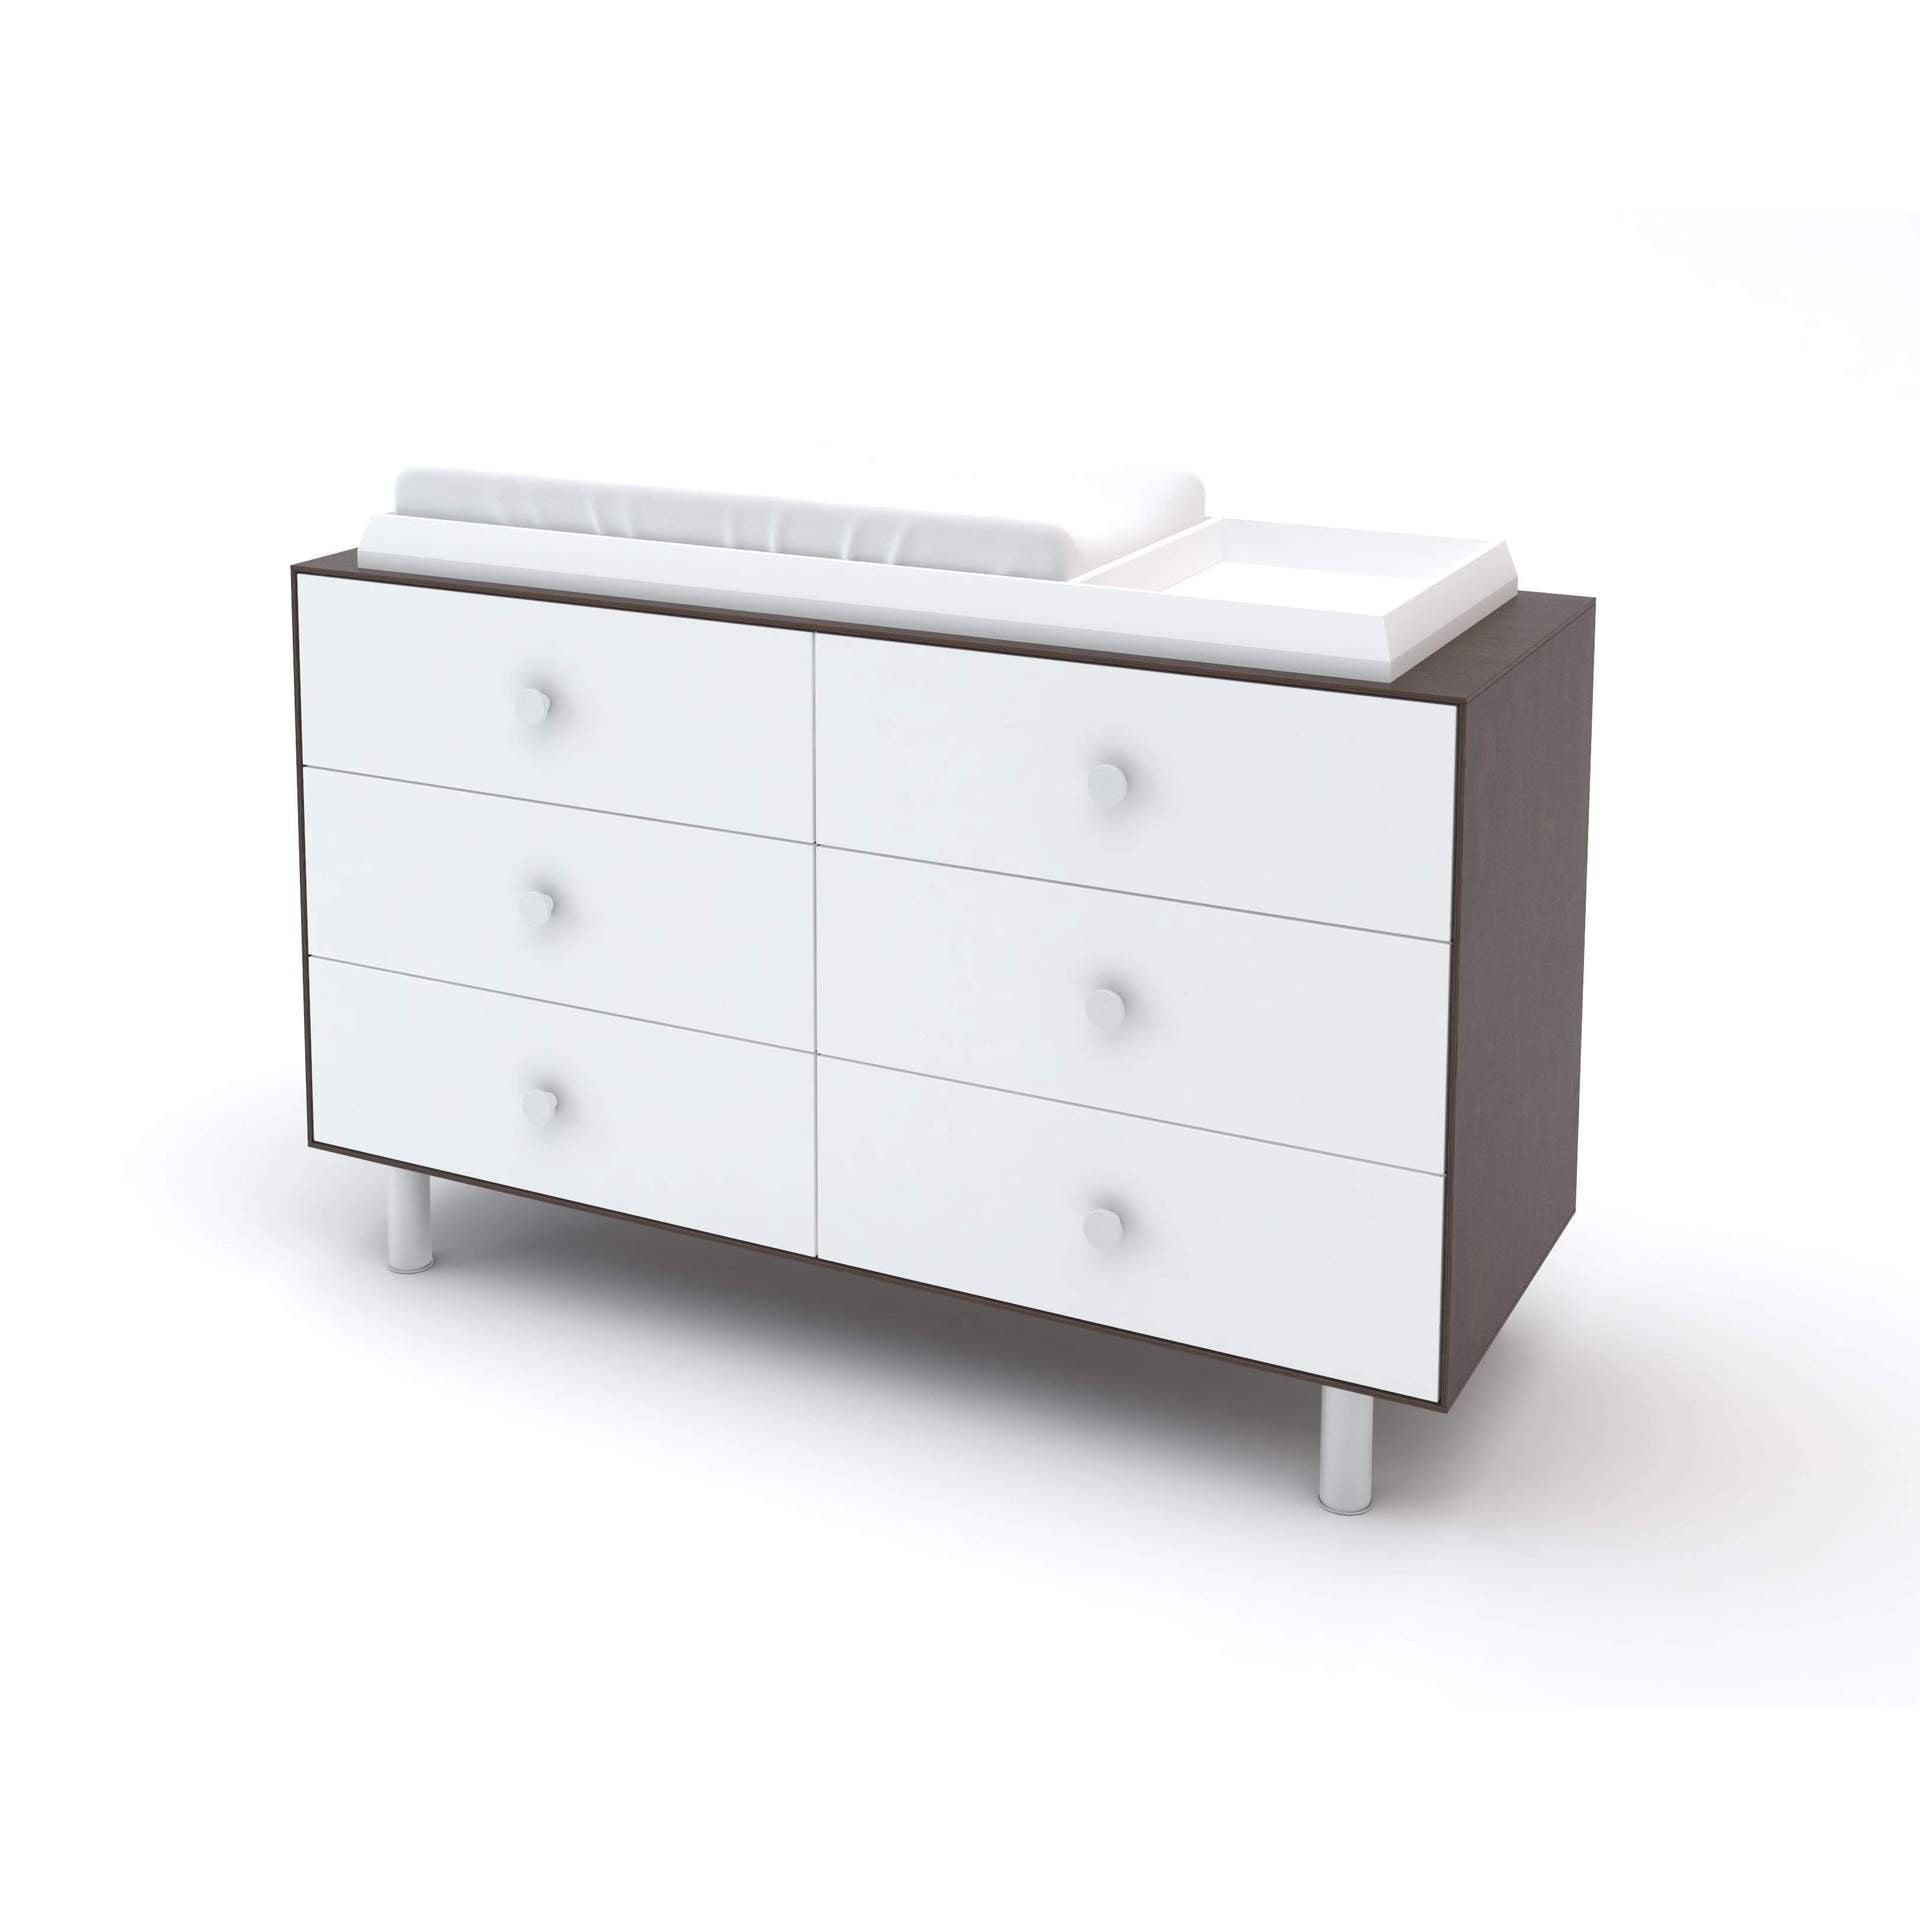 Oeuf Oeuf Merlin 6 Drawer Dresser - Sparrow Base - fawn&forest